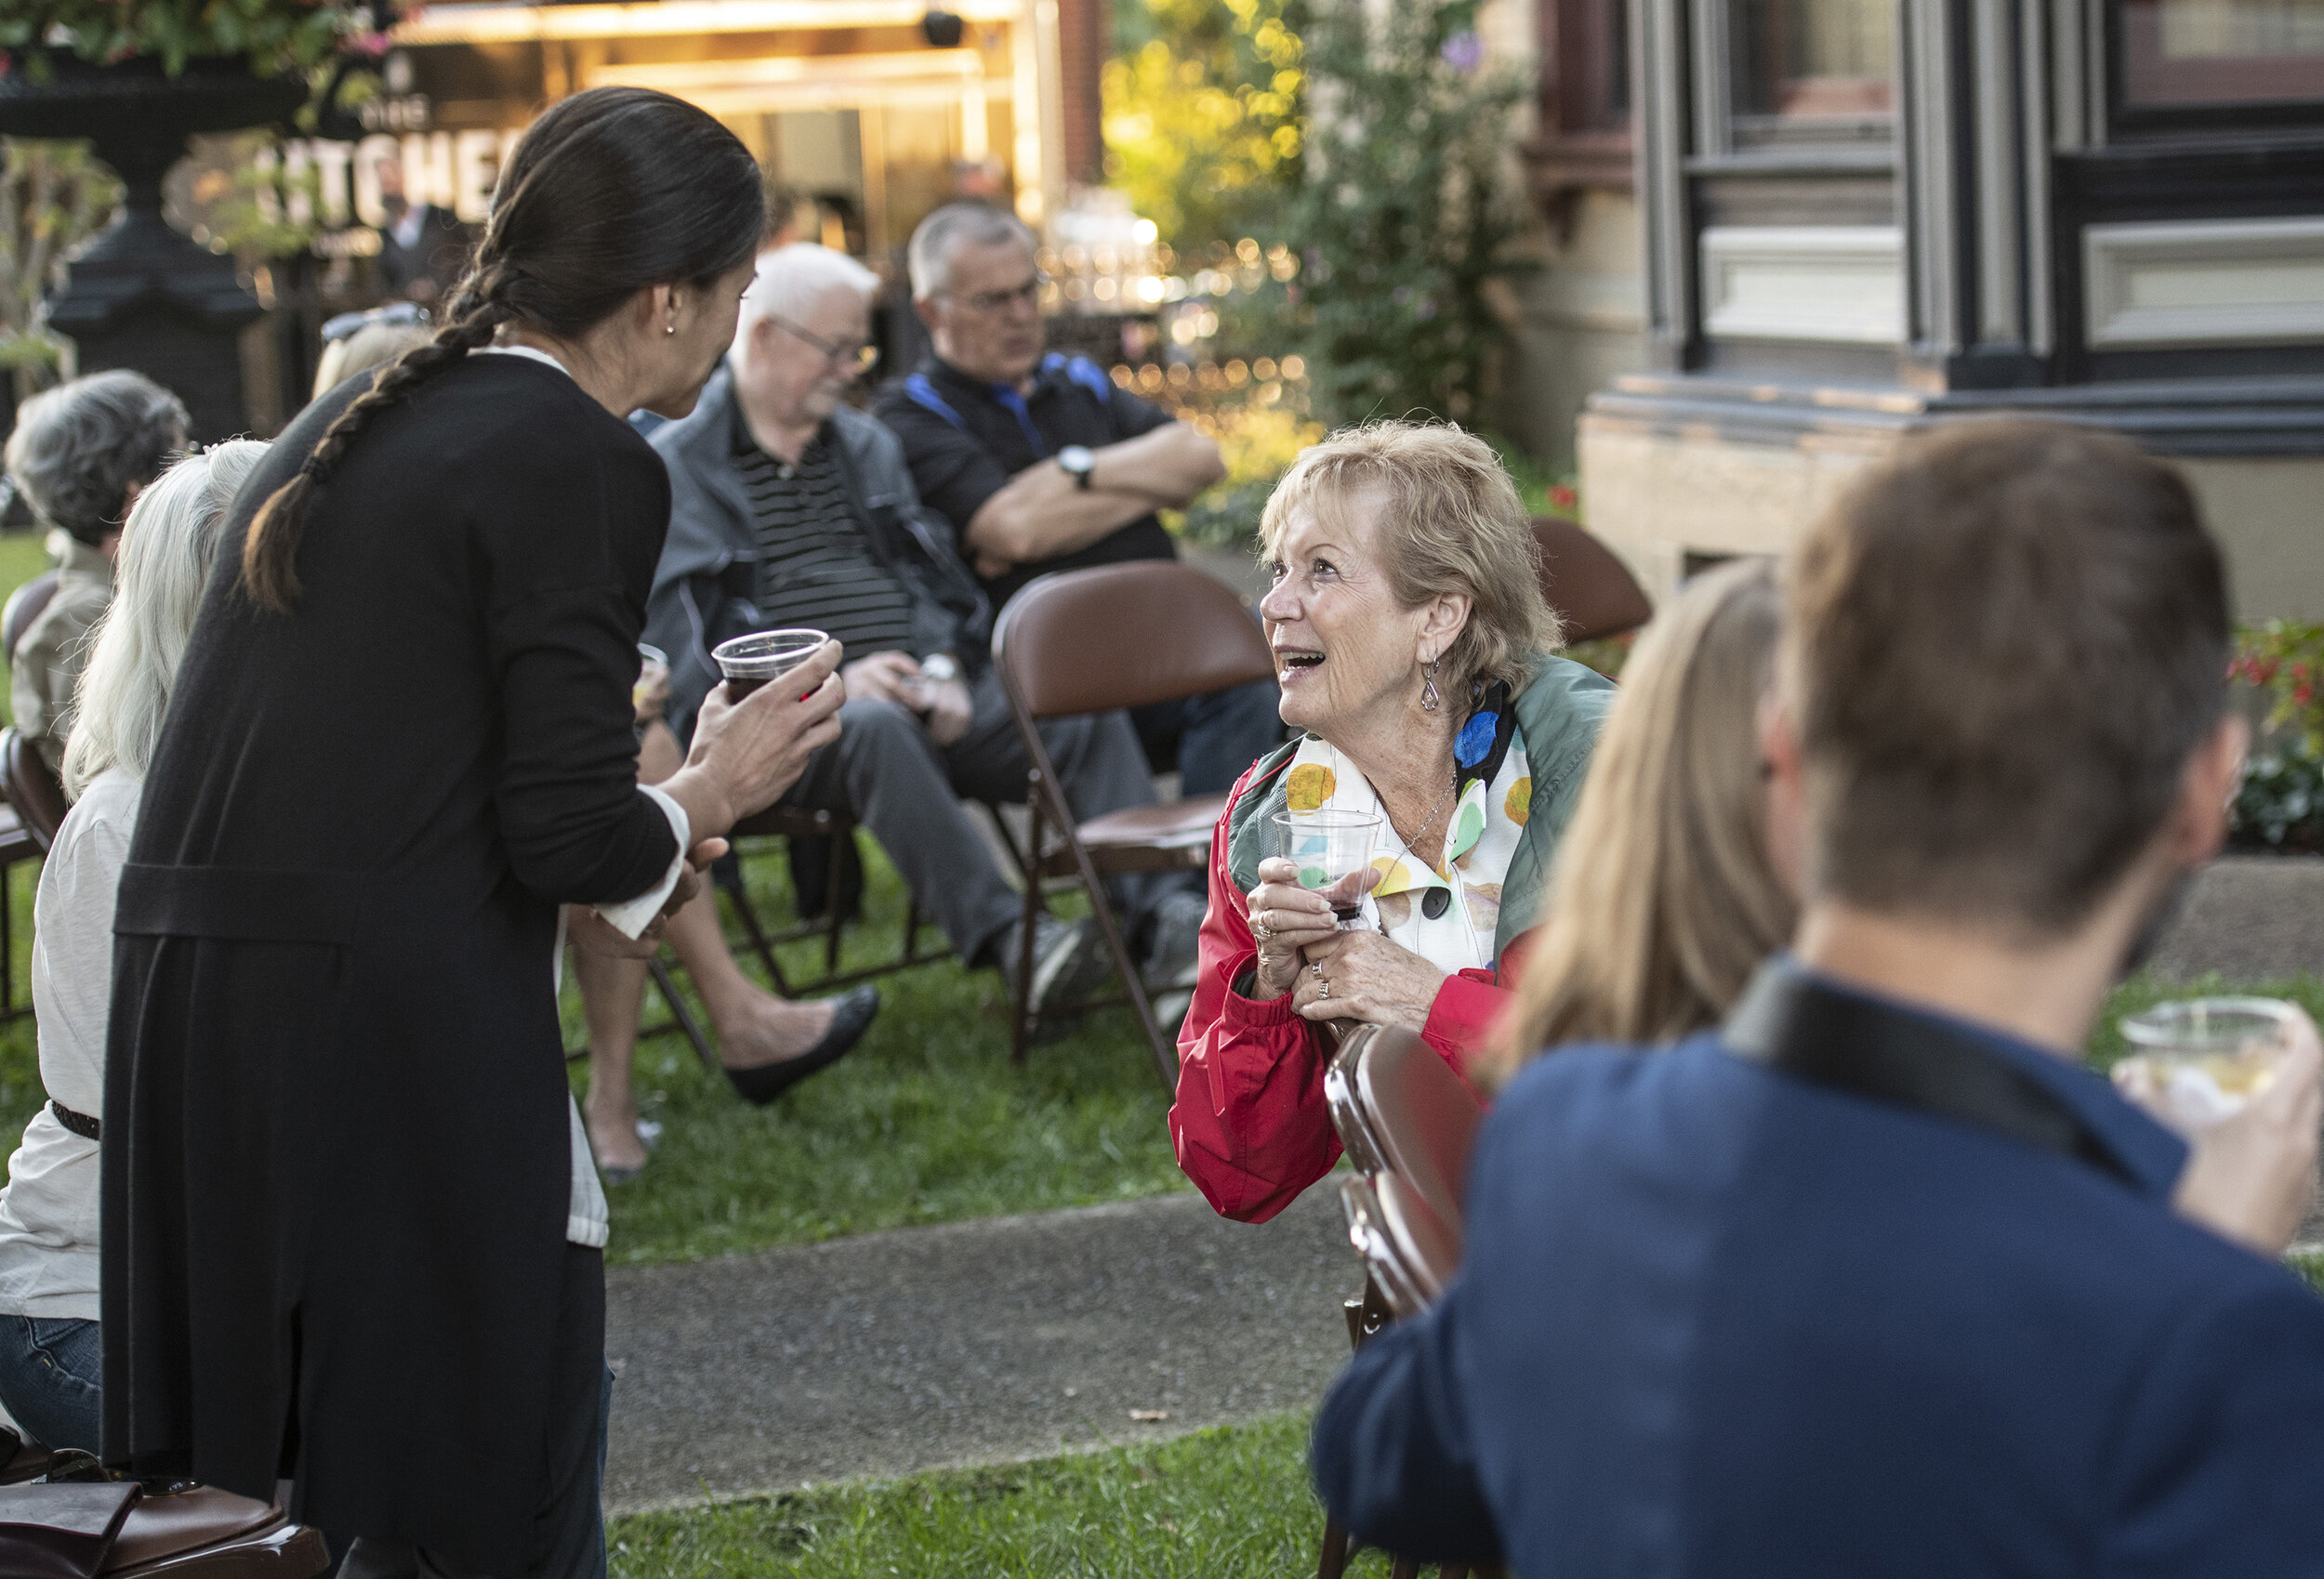 e is for everyone - Wine Down to the Weekend 2018 - Reitz Home Museum - Guests Enjoying Conversation - Alex Morgan Imaging.jpg